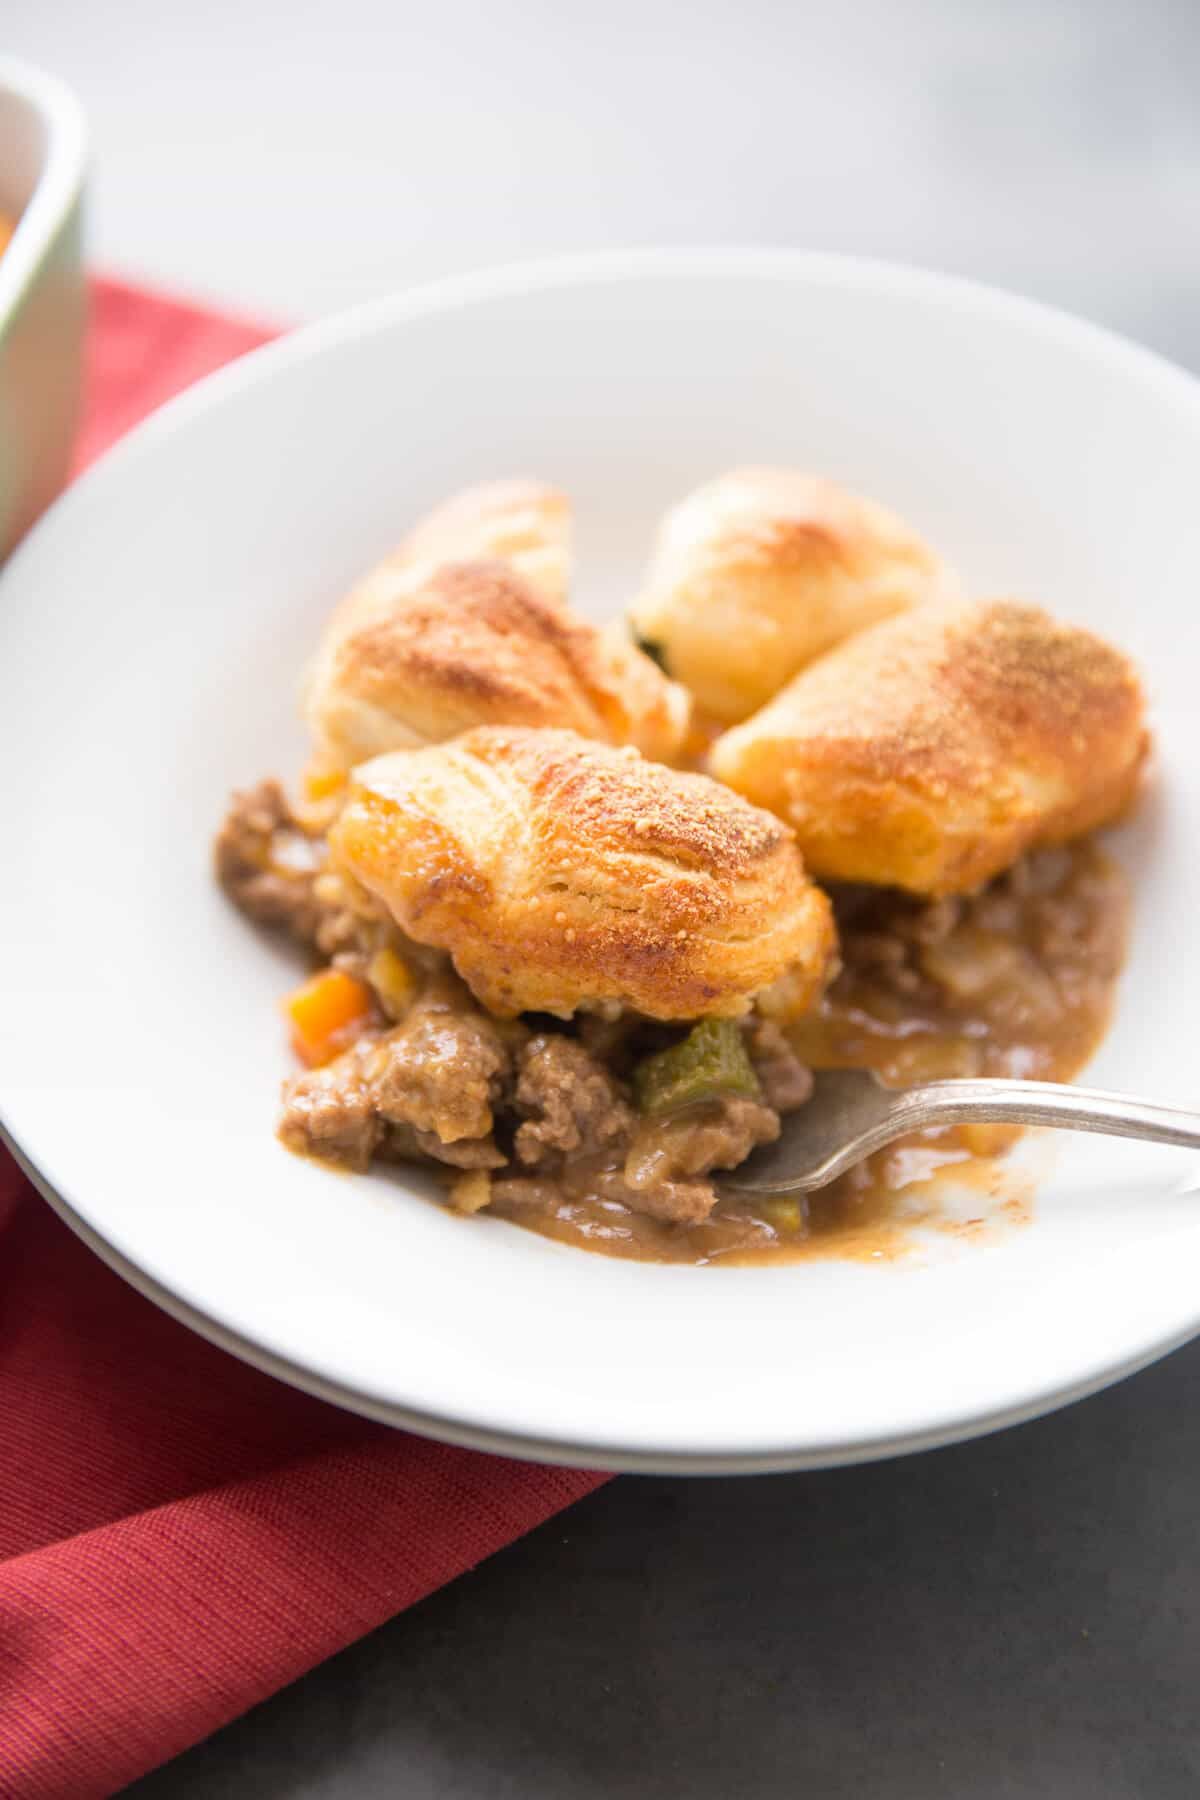 Cheeseburger pot pie is a simple, home cooked comfort food that will both please and nourish your family.